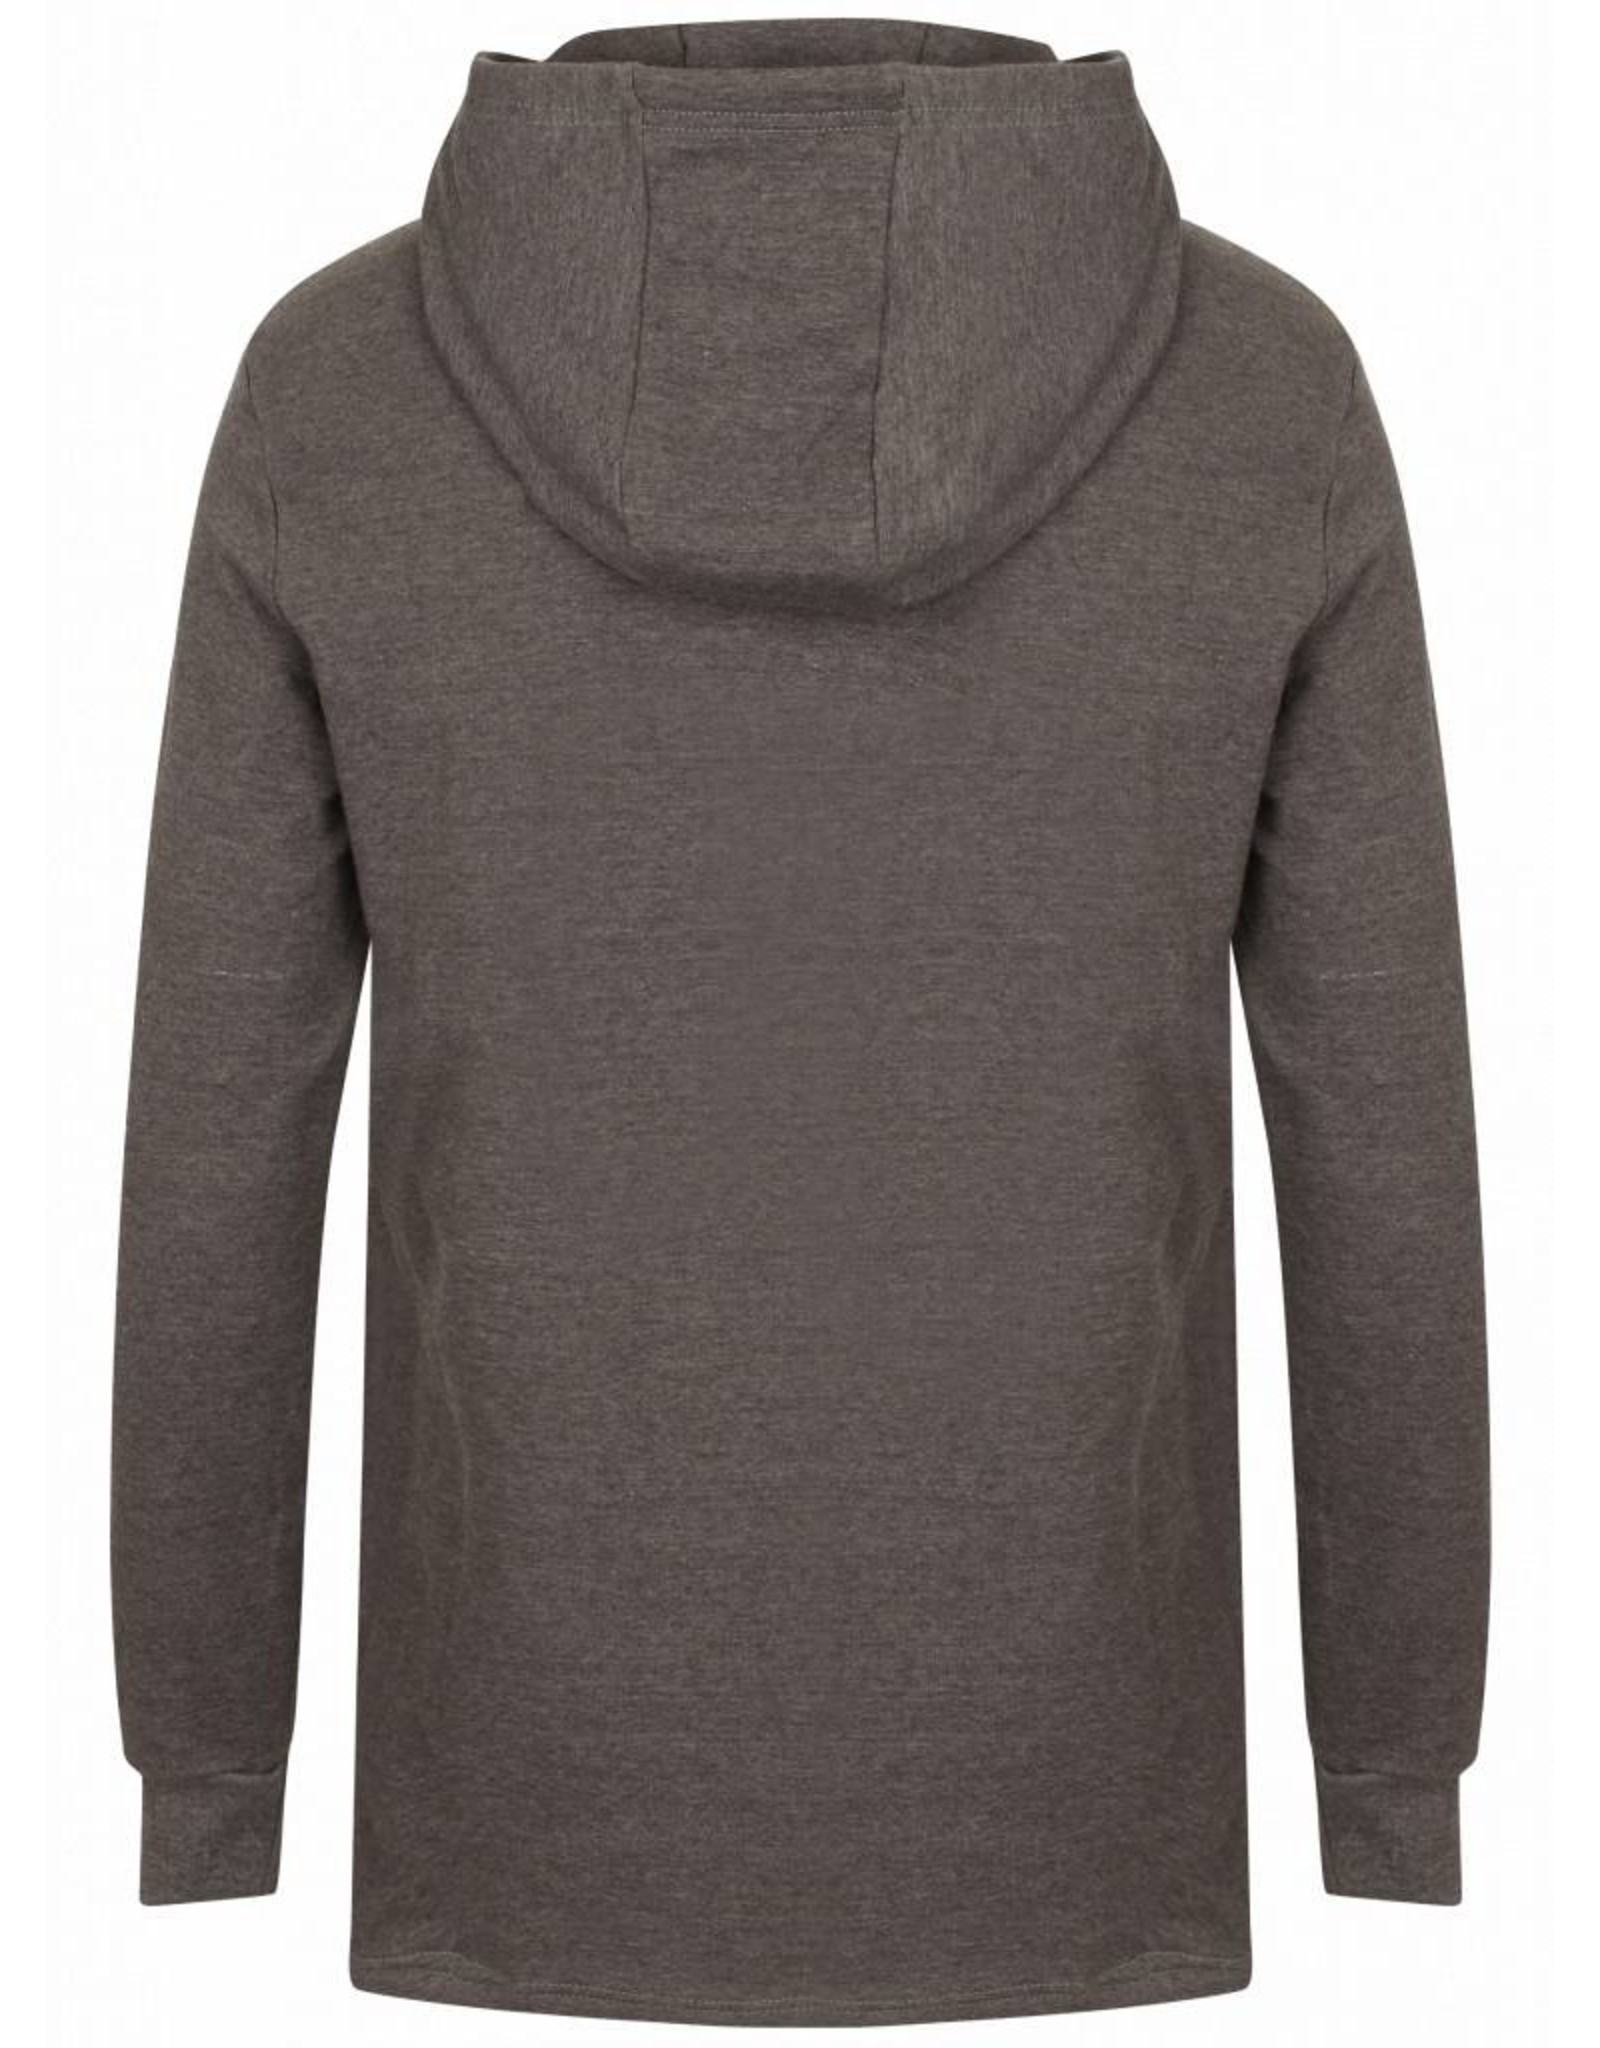 Gold's Gym Long Sleeve Hooded Sweat - Grijs